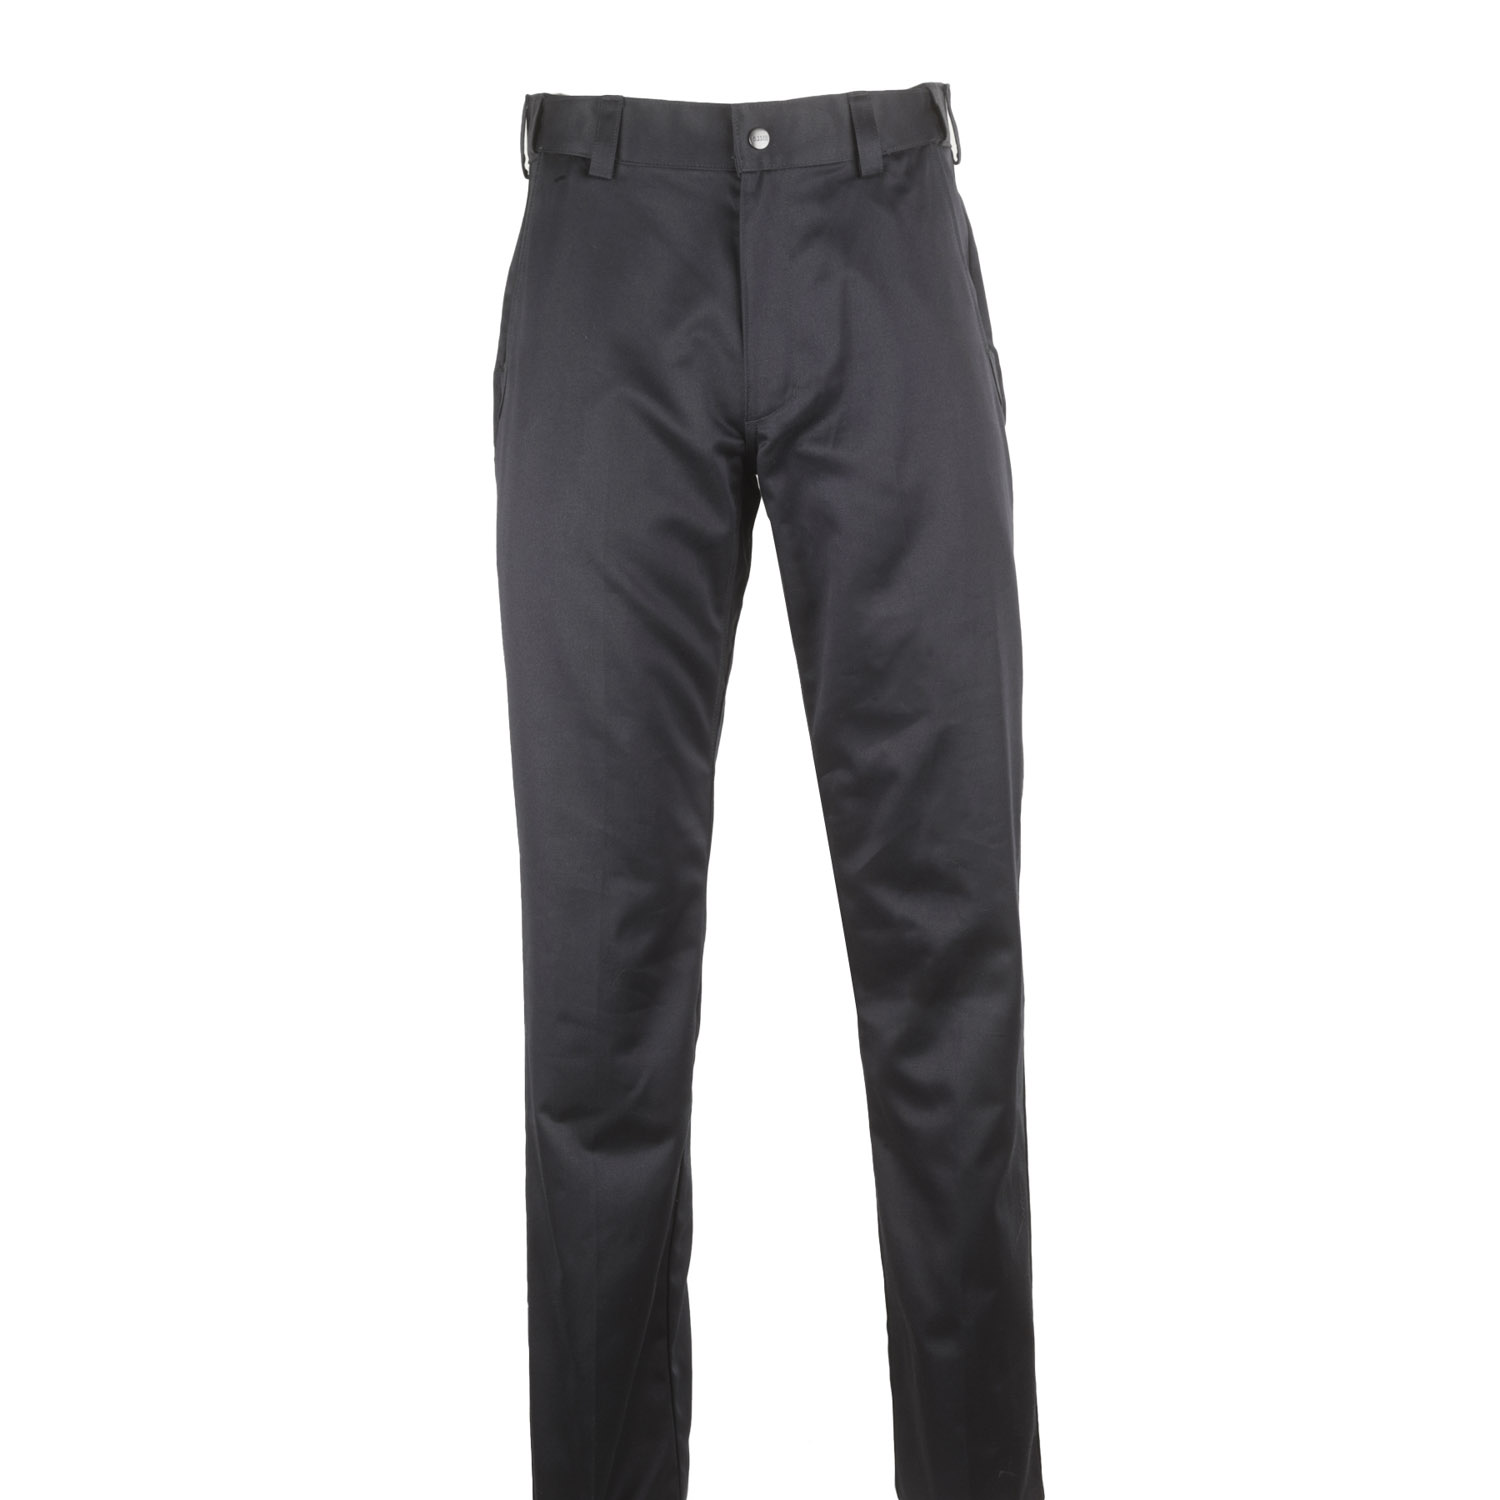 5.11 Tactical Company Pant 2.0